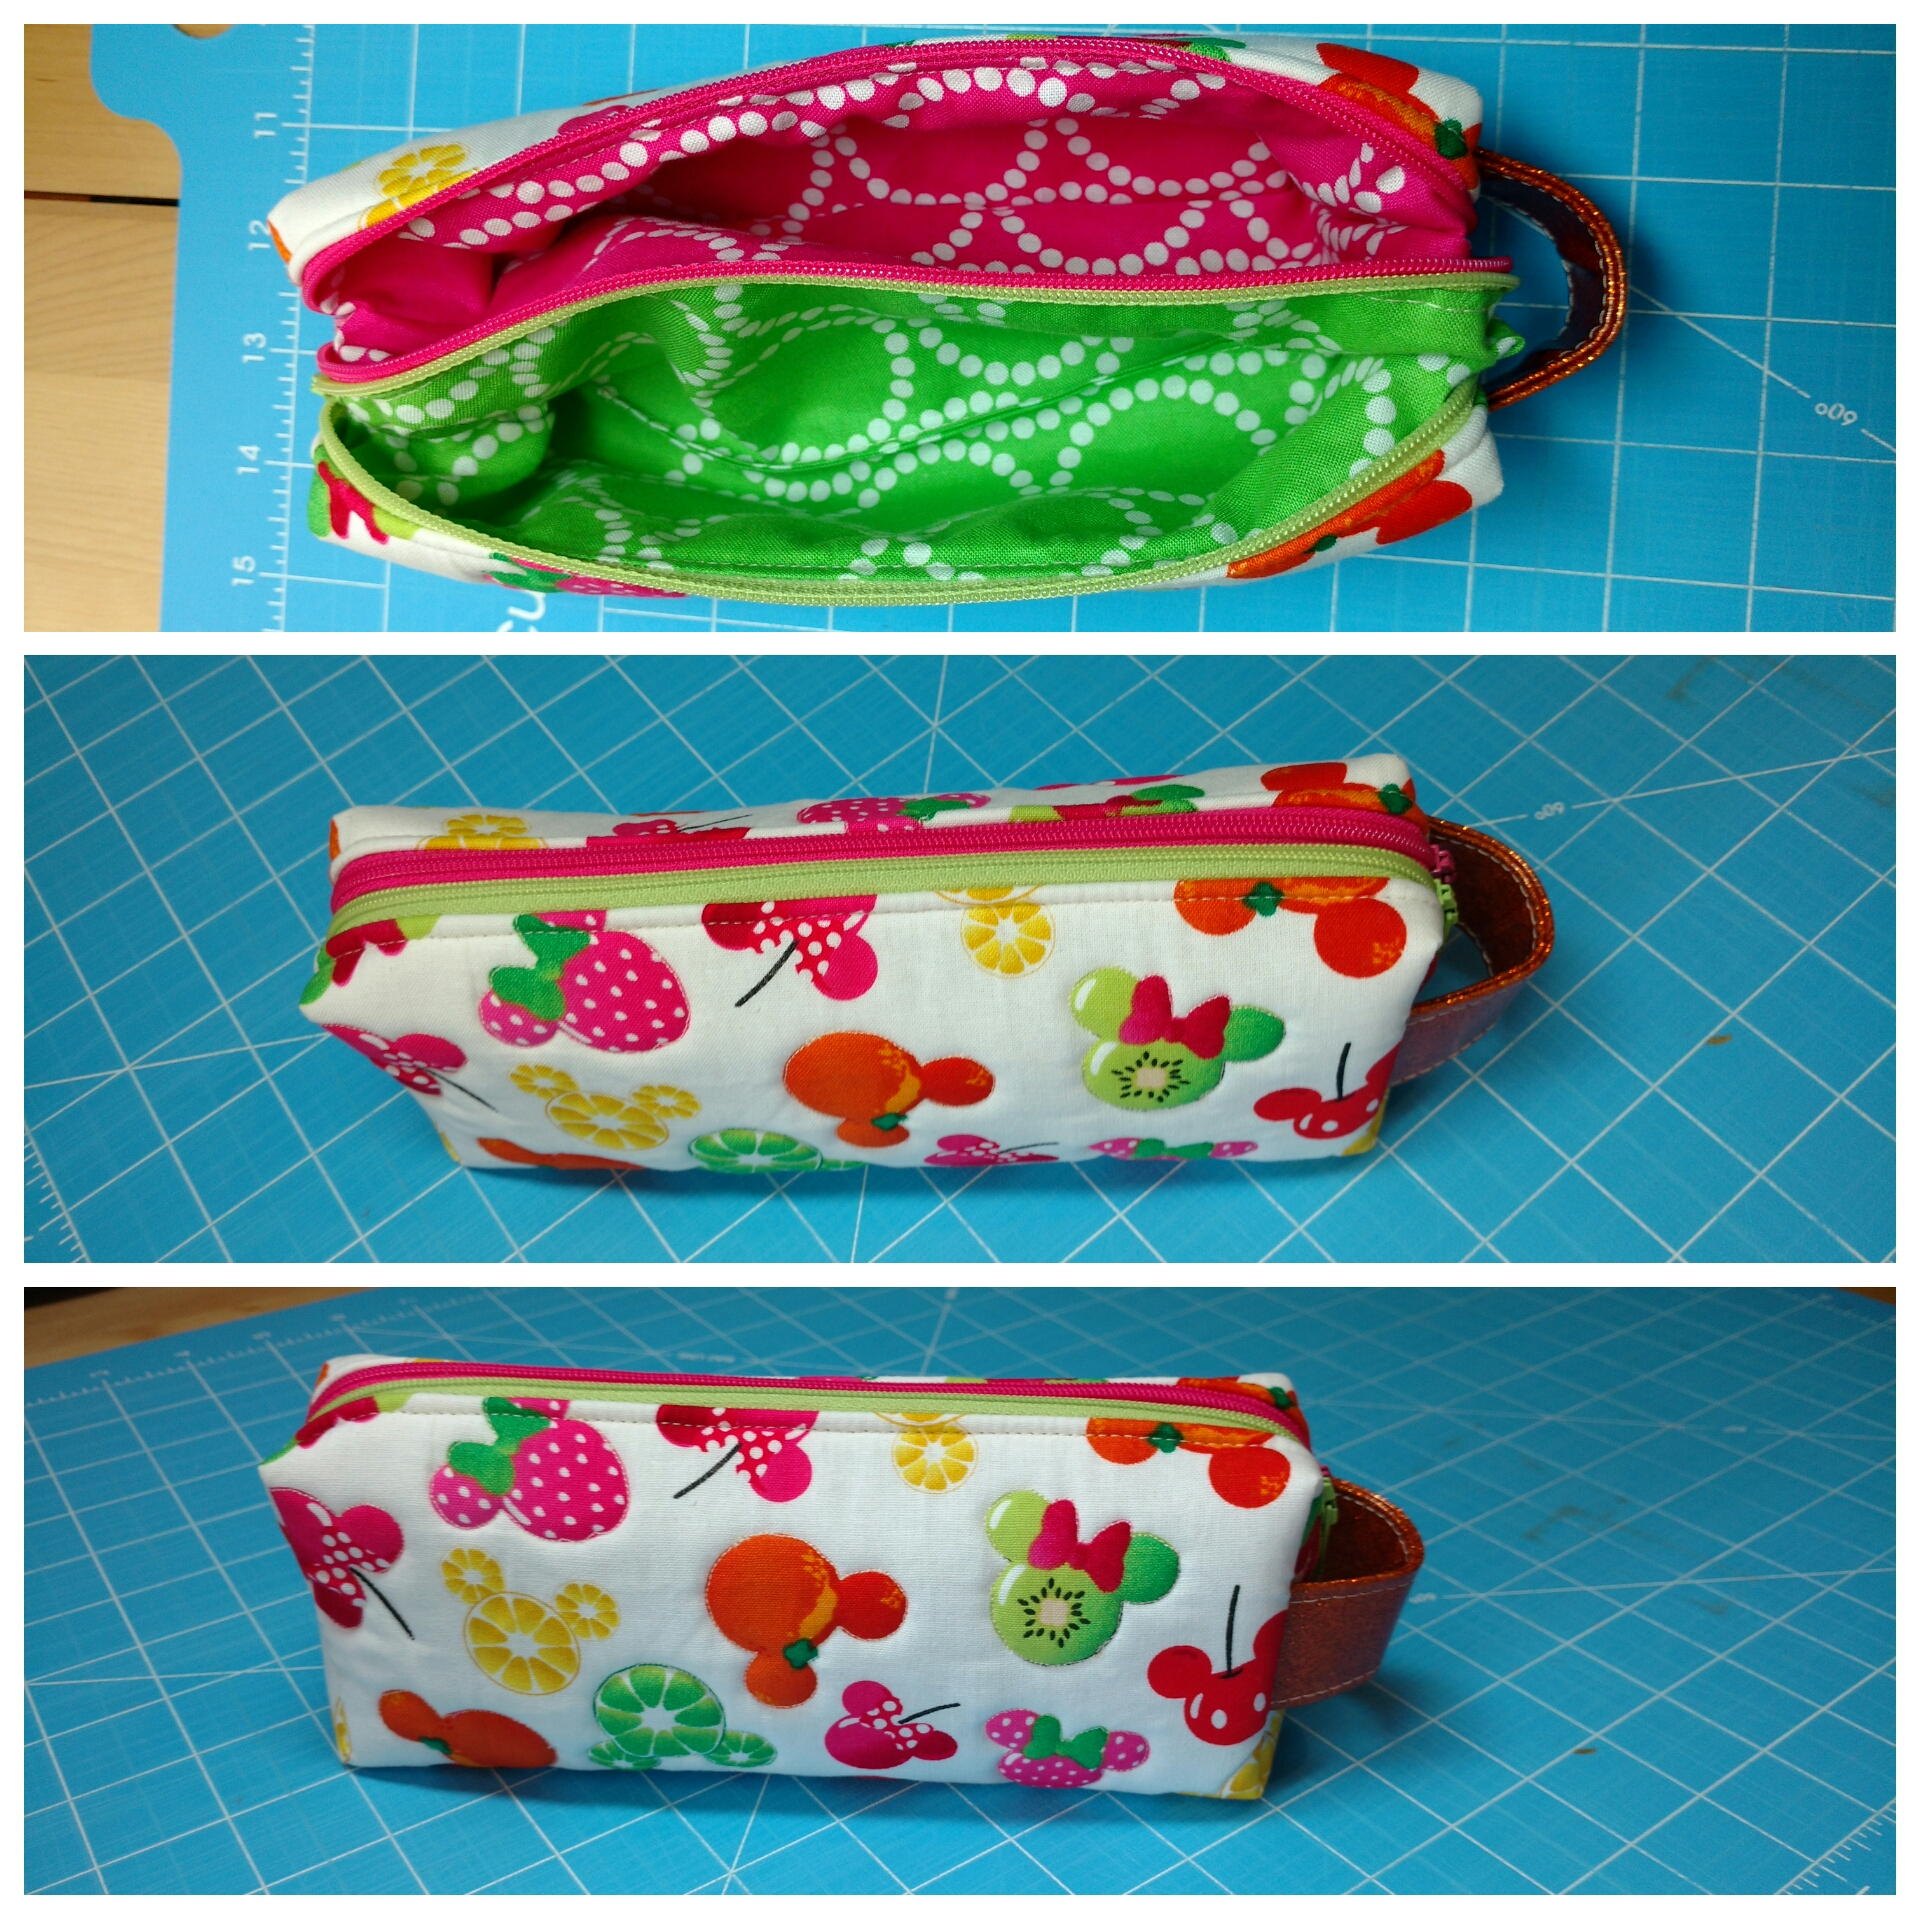 Sew Sweetness Annex Double-Zip Box Pouches, sewn by Bree of My Crafty Crap